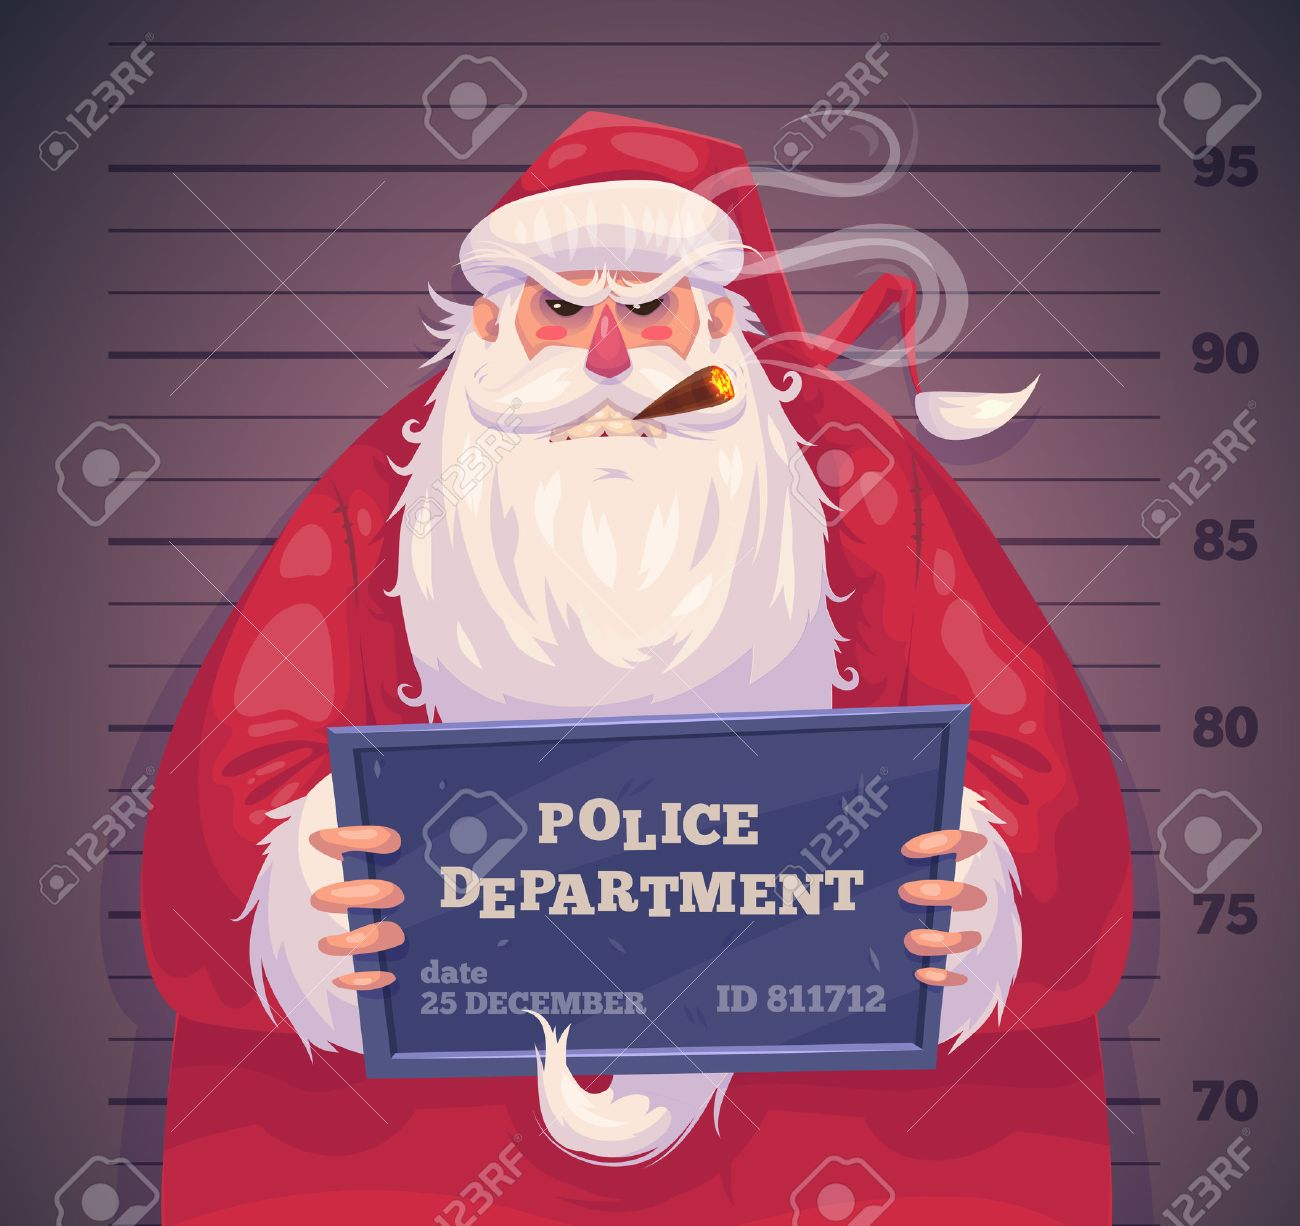 Bad Santa in police department. Christmas greeting card background poster. Vector illustration. Merry christmas and Happy new year. - 48707994